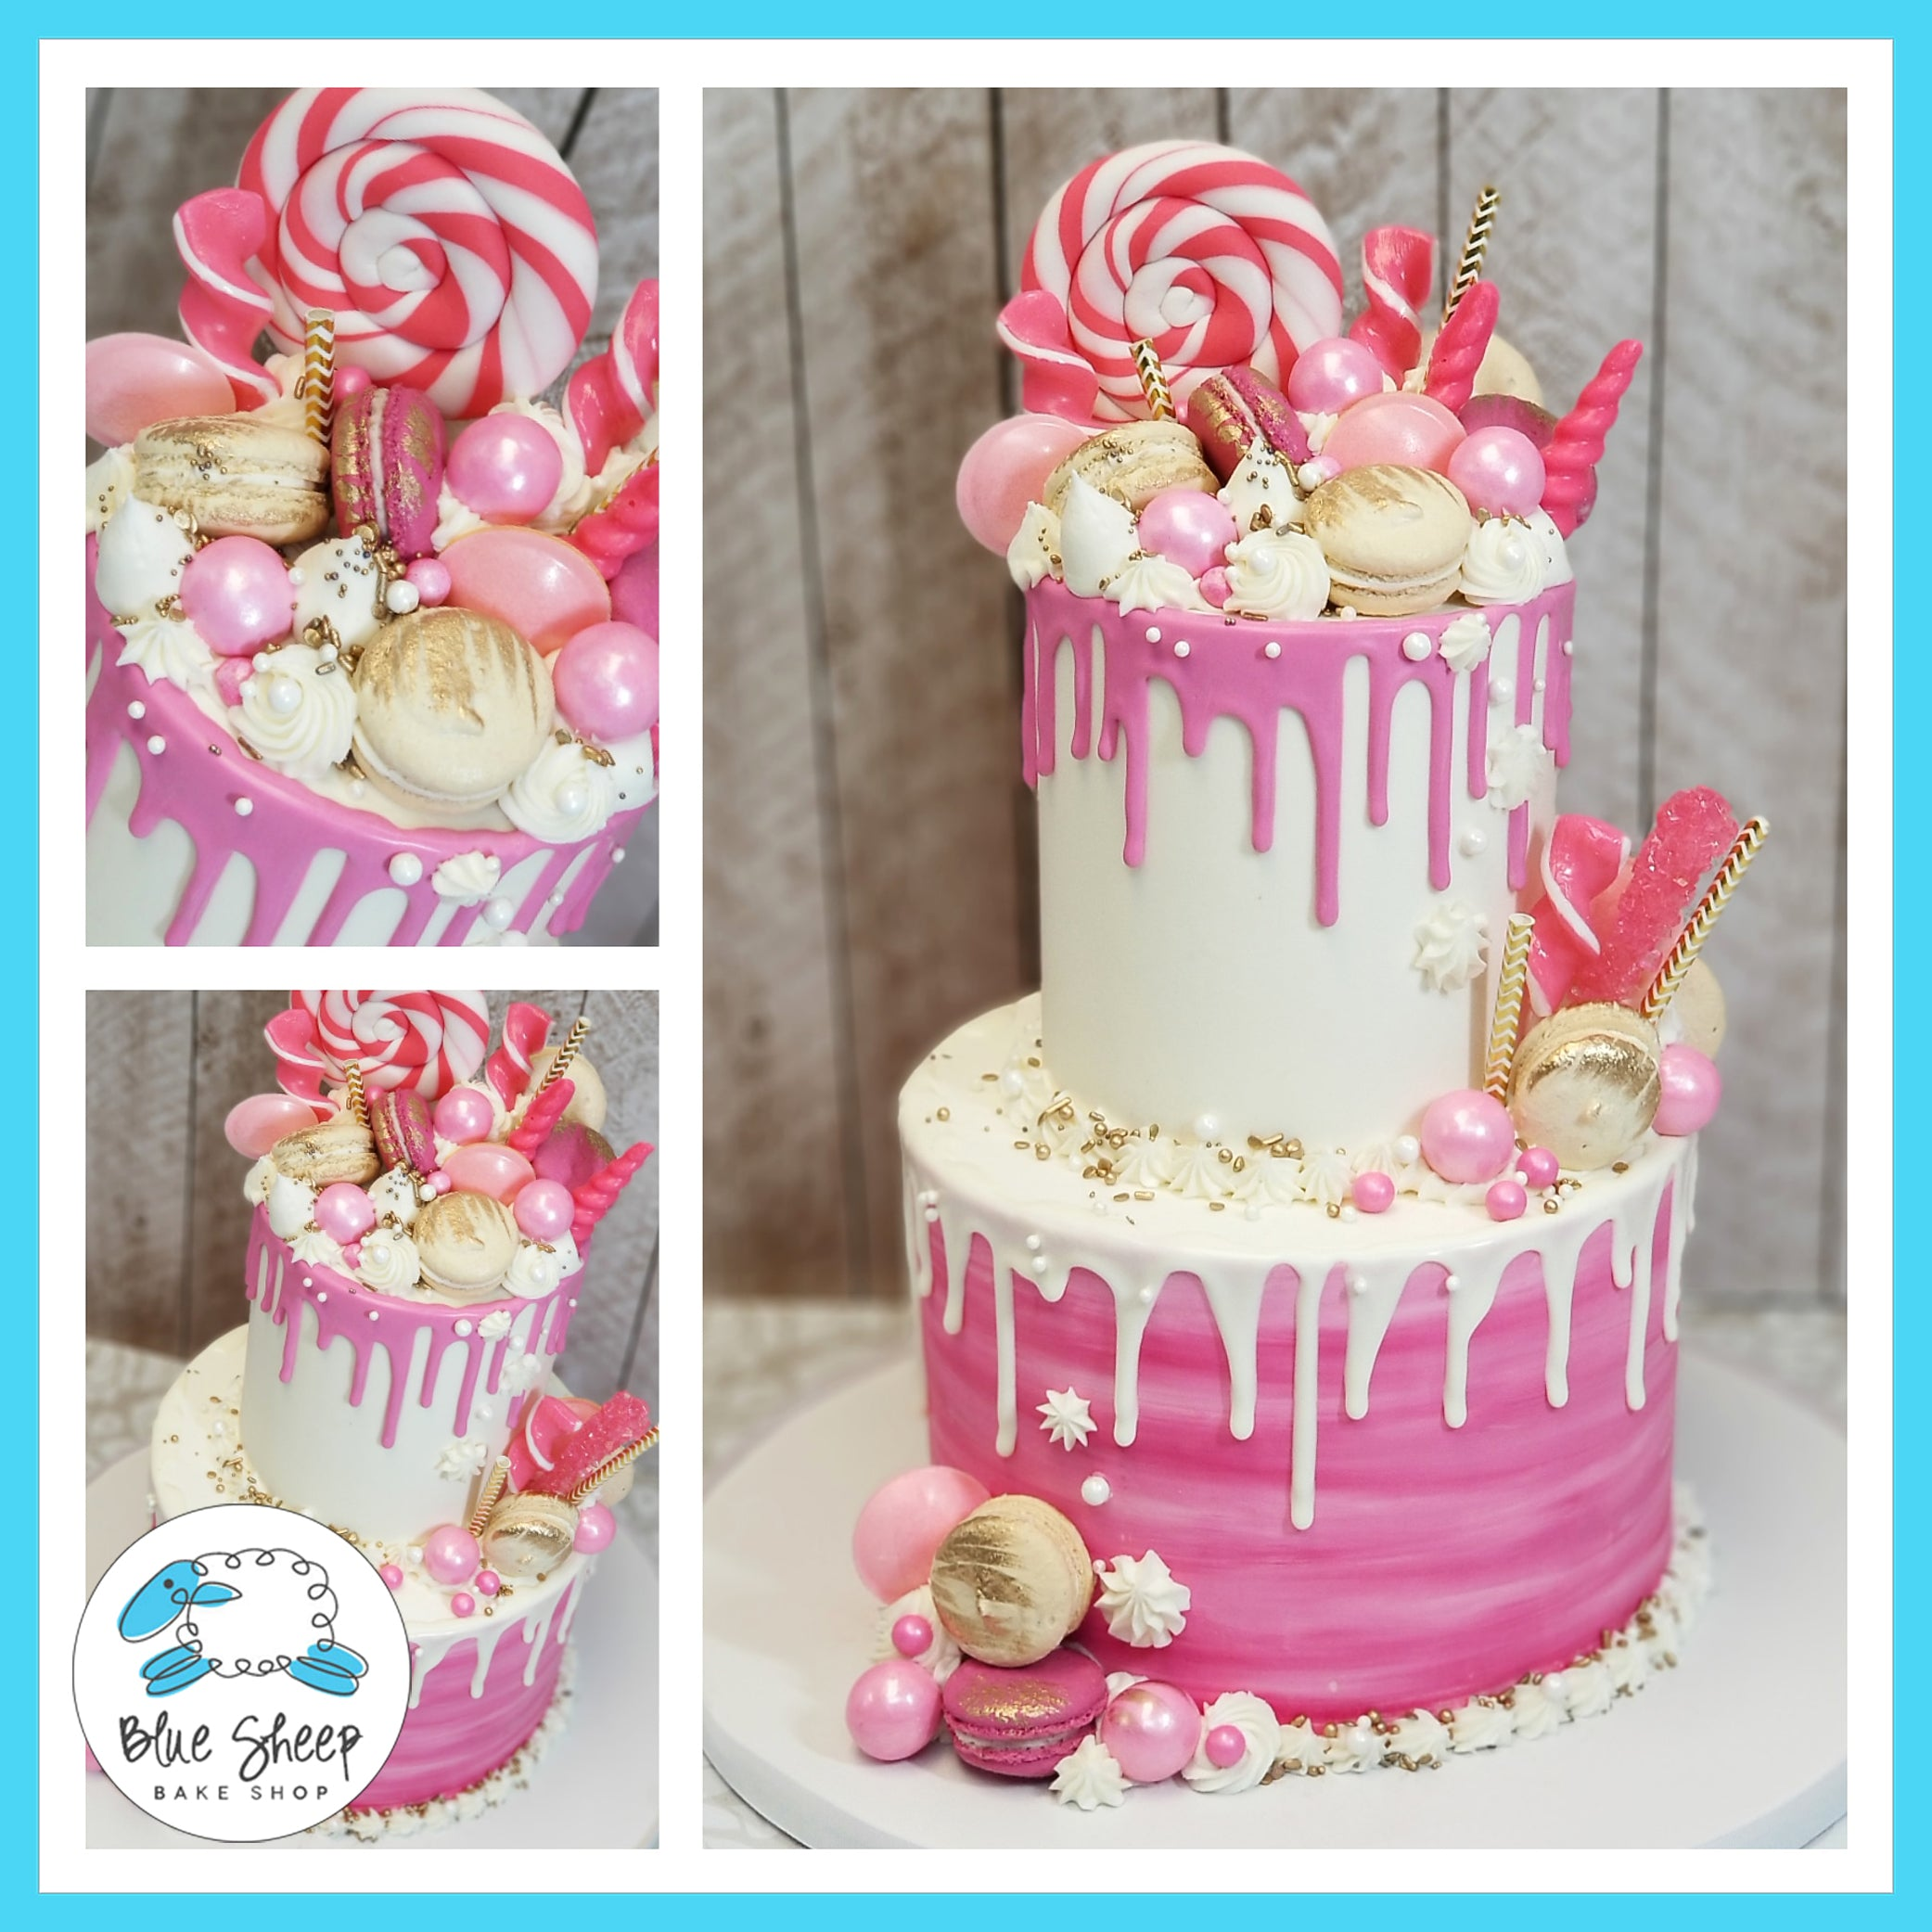 Pink And White Buttercream Drip Cake With Goodies Blue Sheep Bake Shop